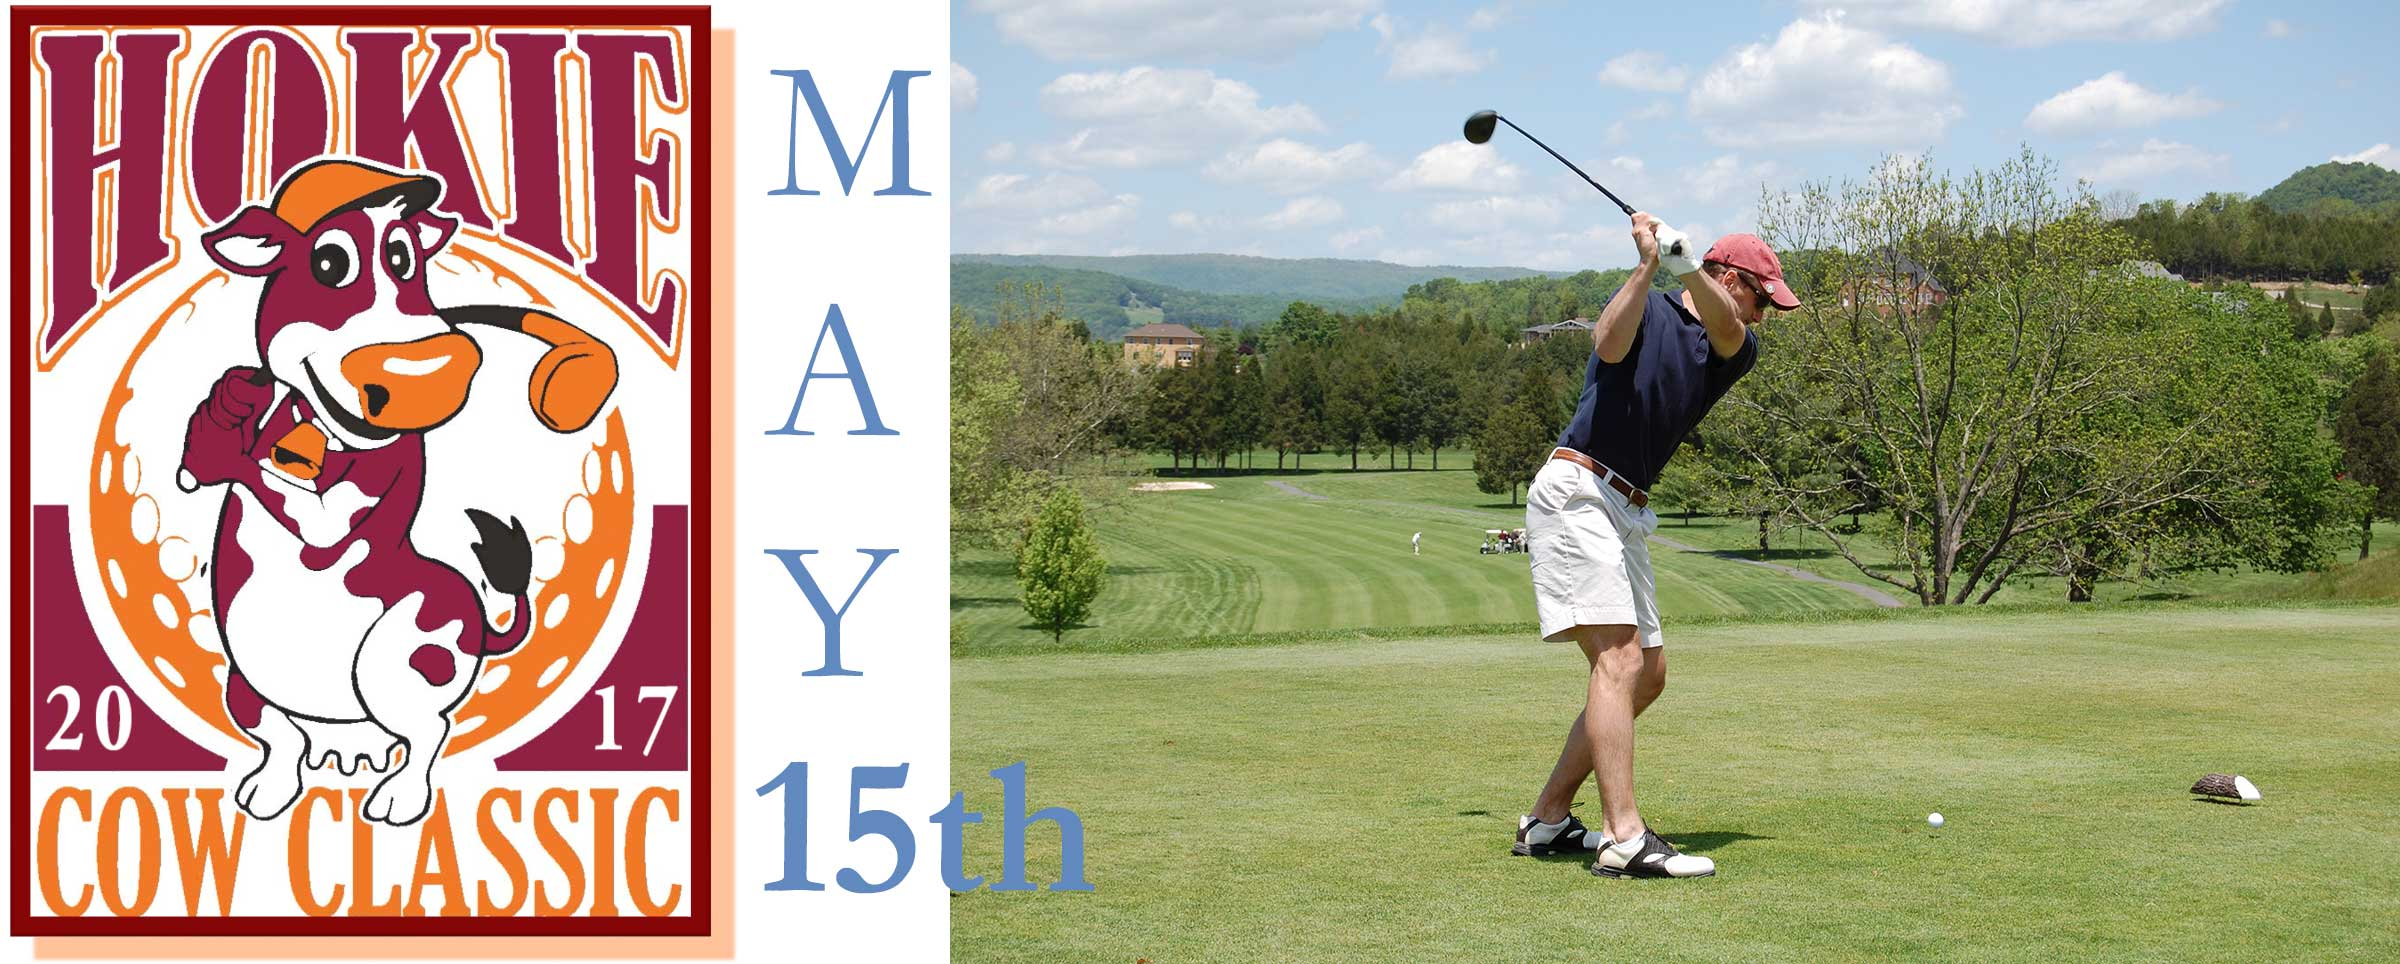 This year's golf tournament is set for May 15th!